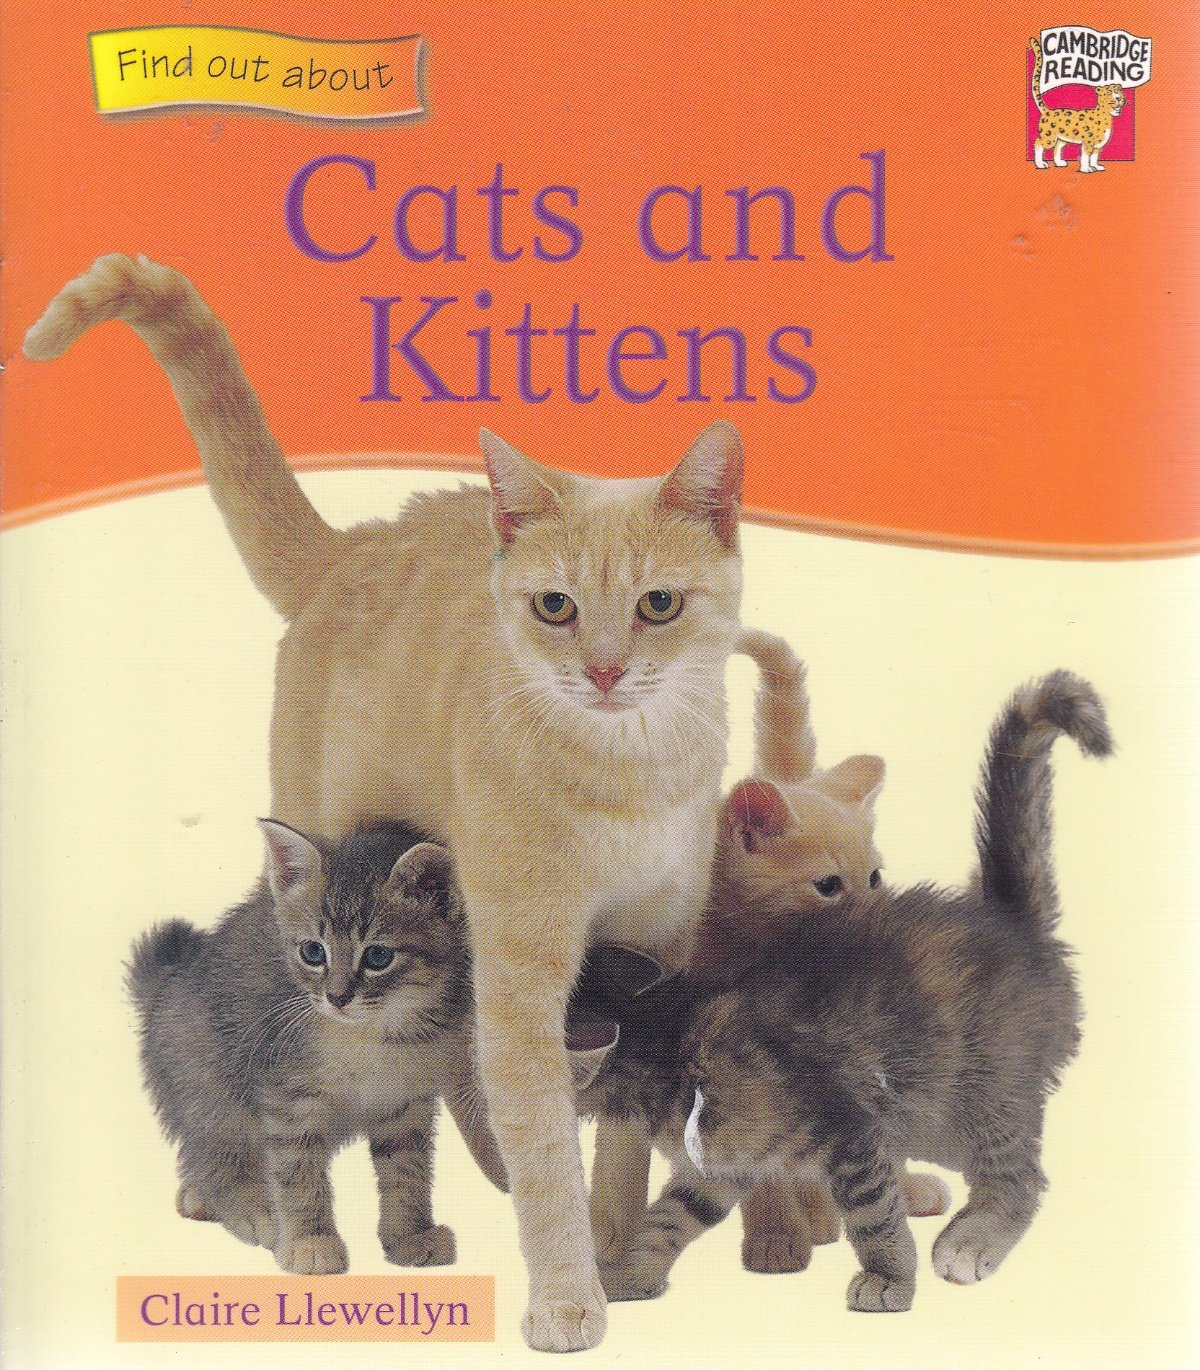 Cats and Kittens (Cambridge Reading) PDF